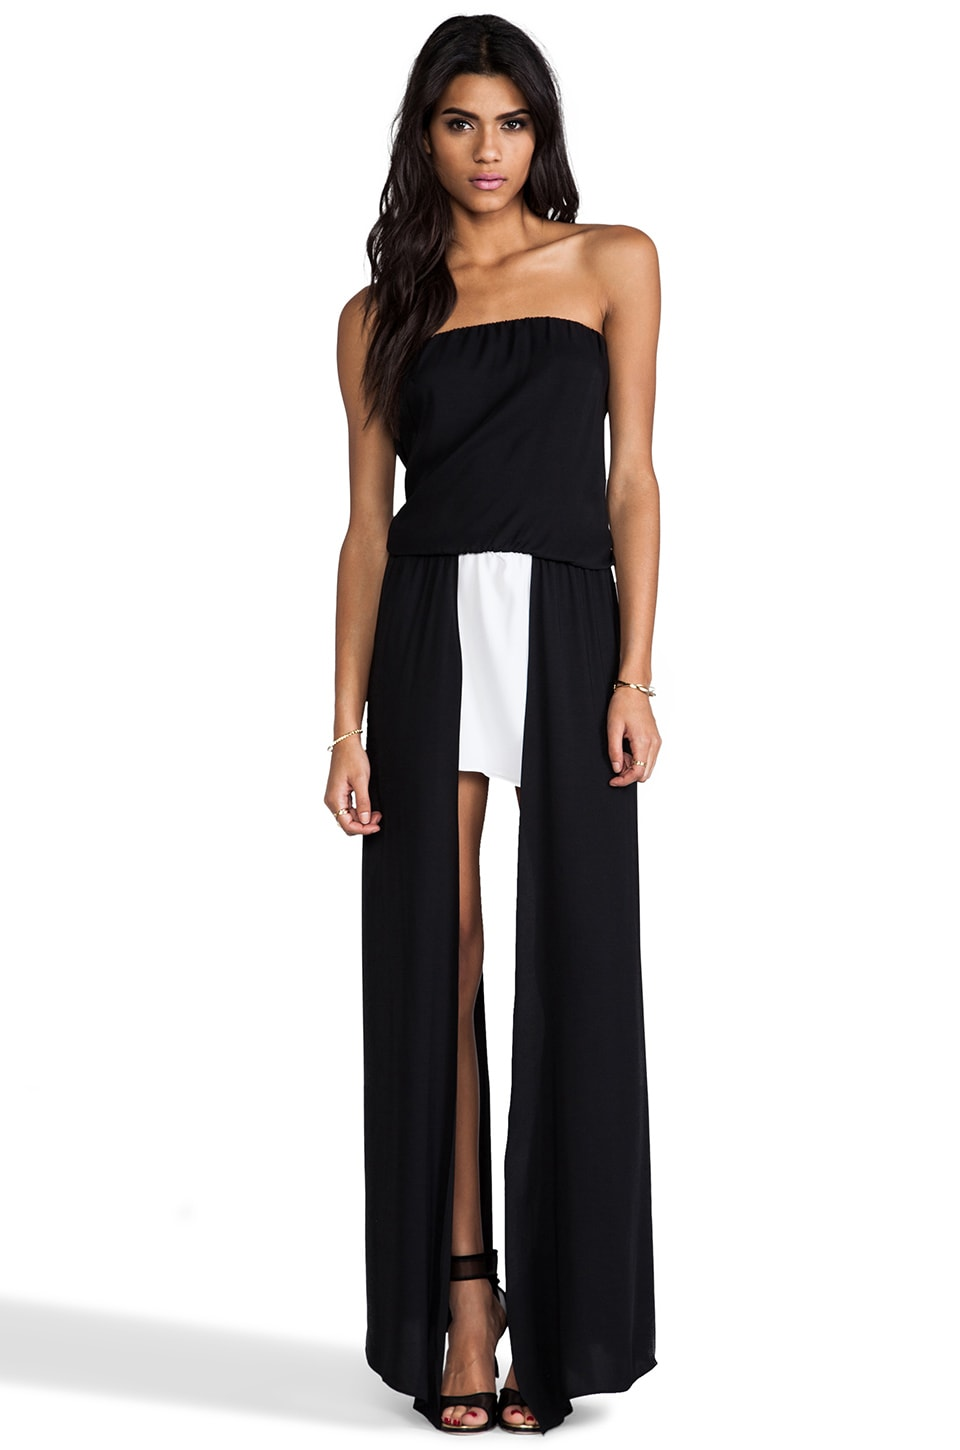 Alexis Mavra Asymmetrical Dress in Black & White